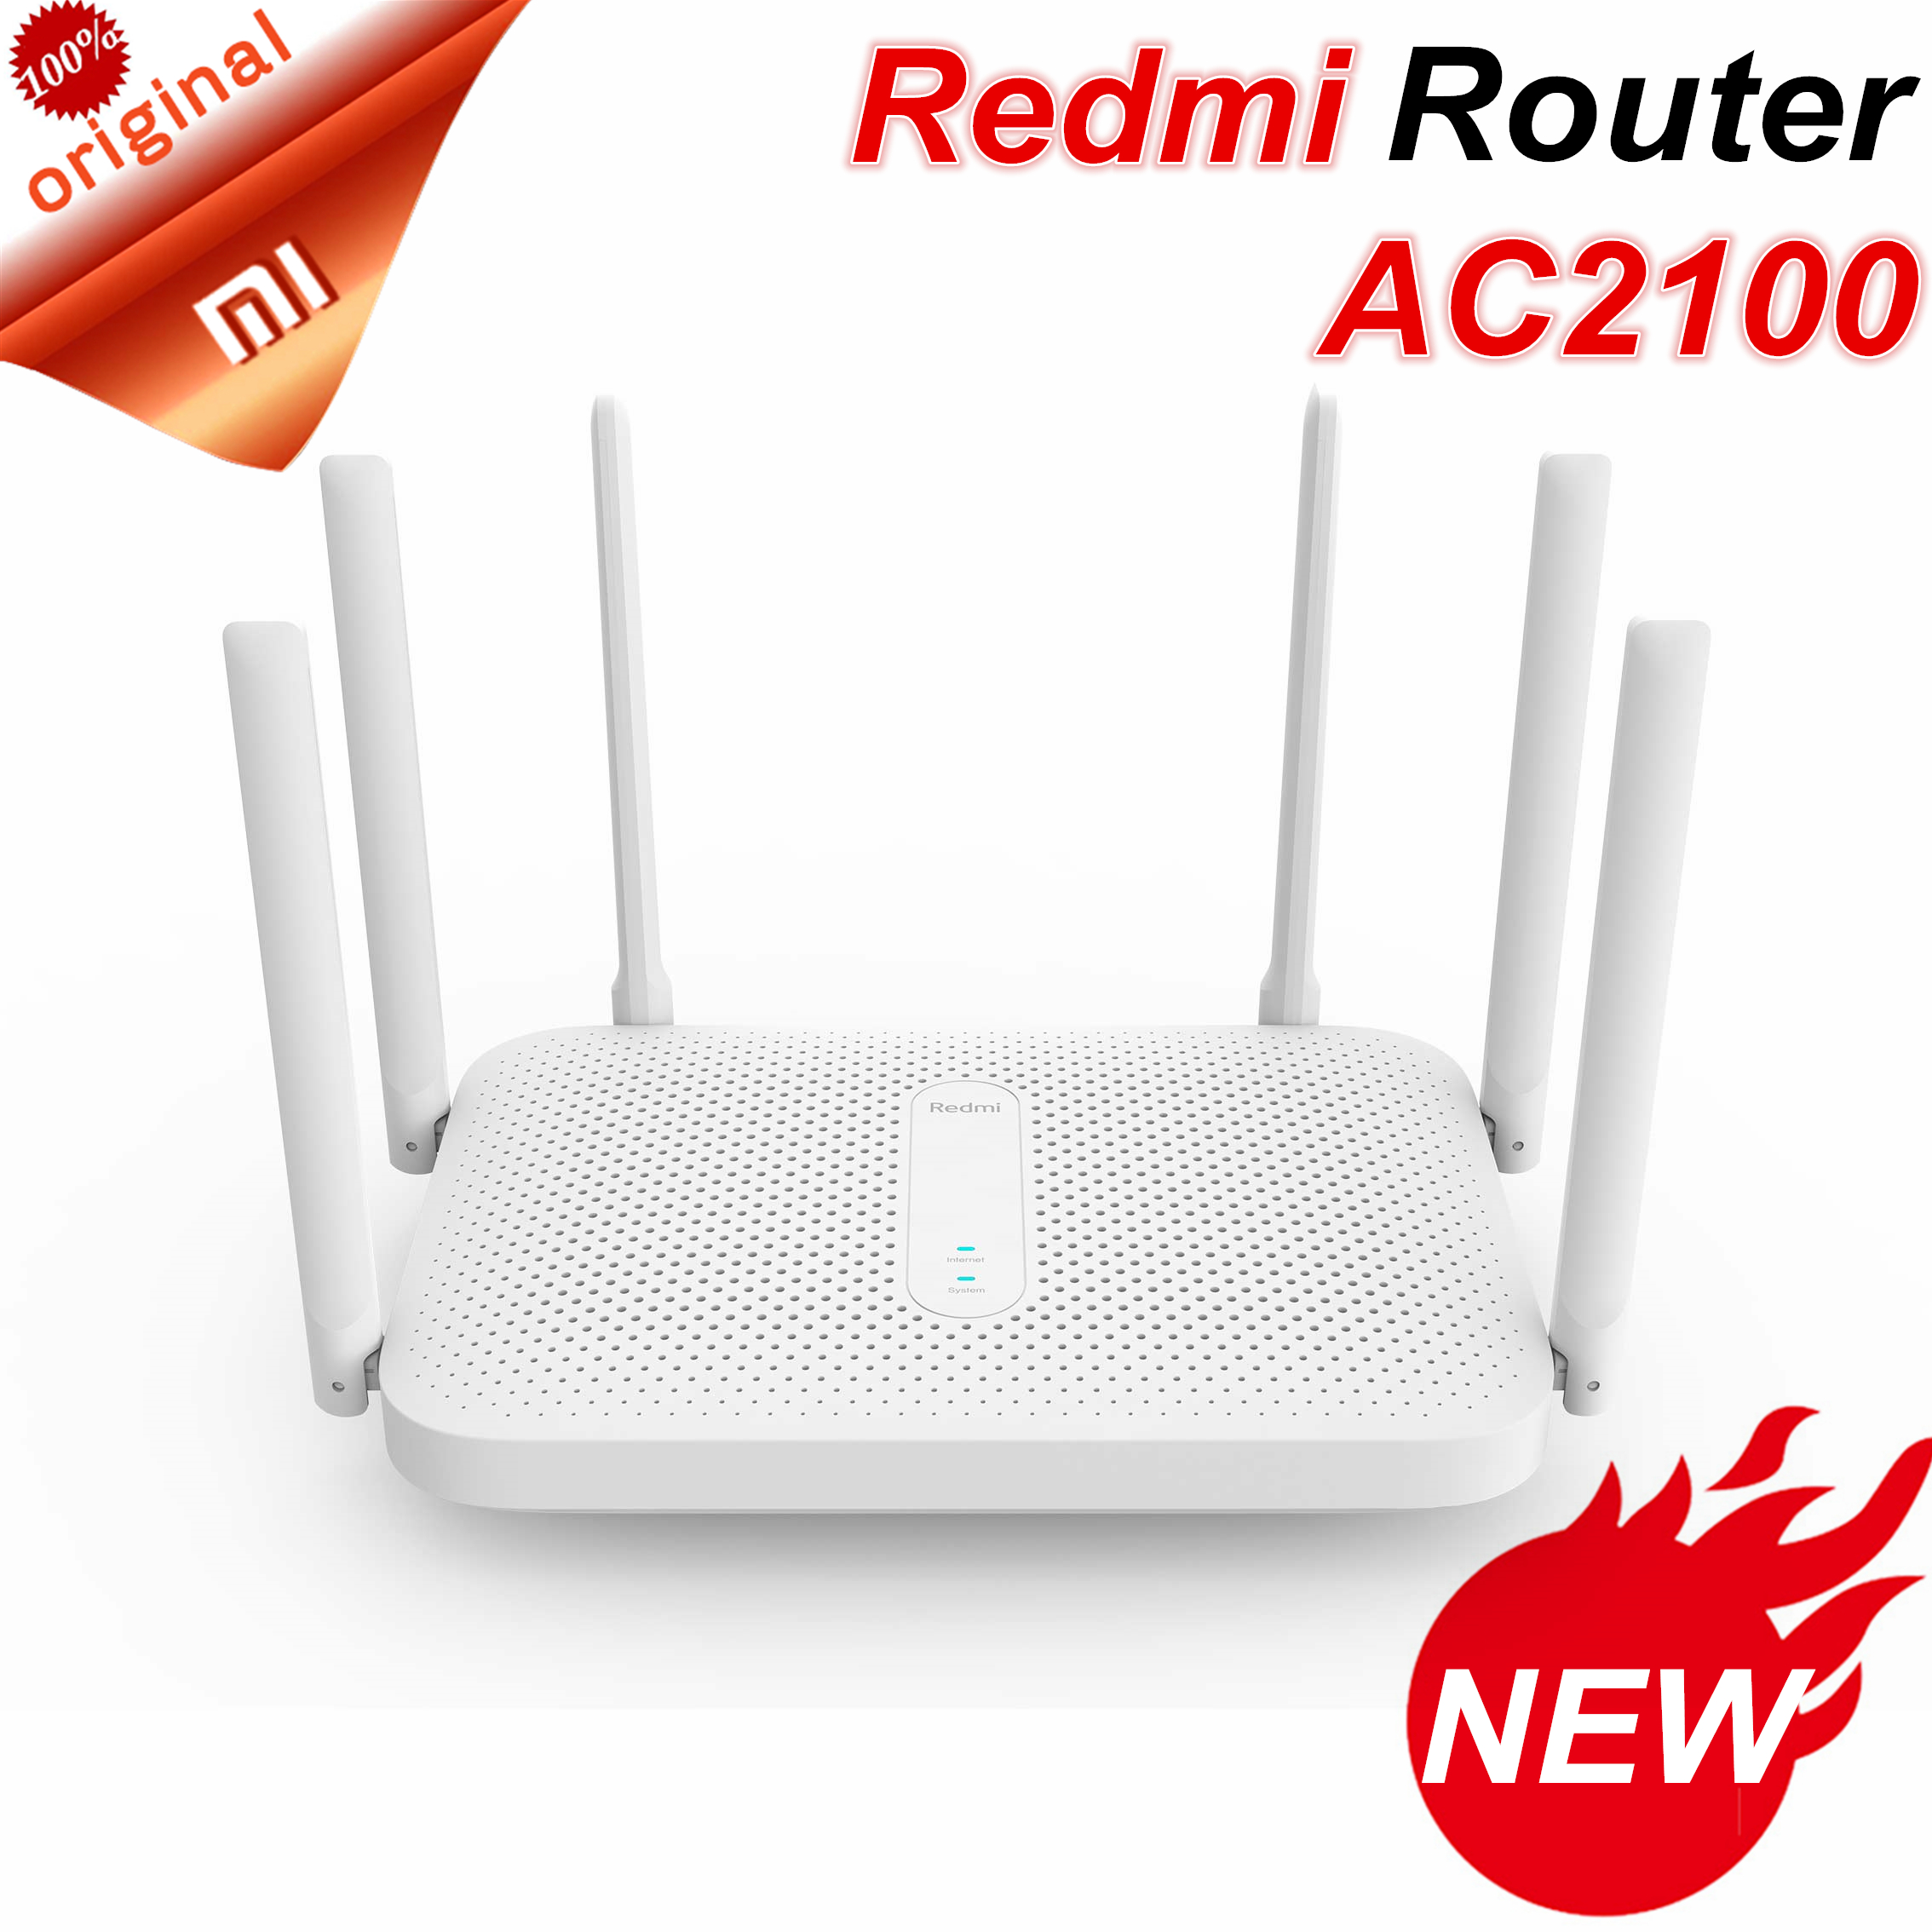 Xiaomi Wifi Repeater Antennas Ac2100-Router Easy-Setup Gigabit Dual-Band Redmi Wireless title=